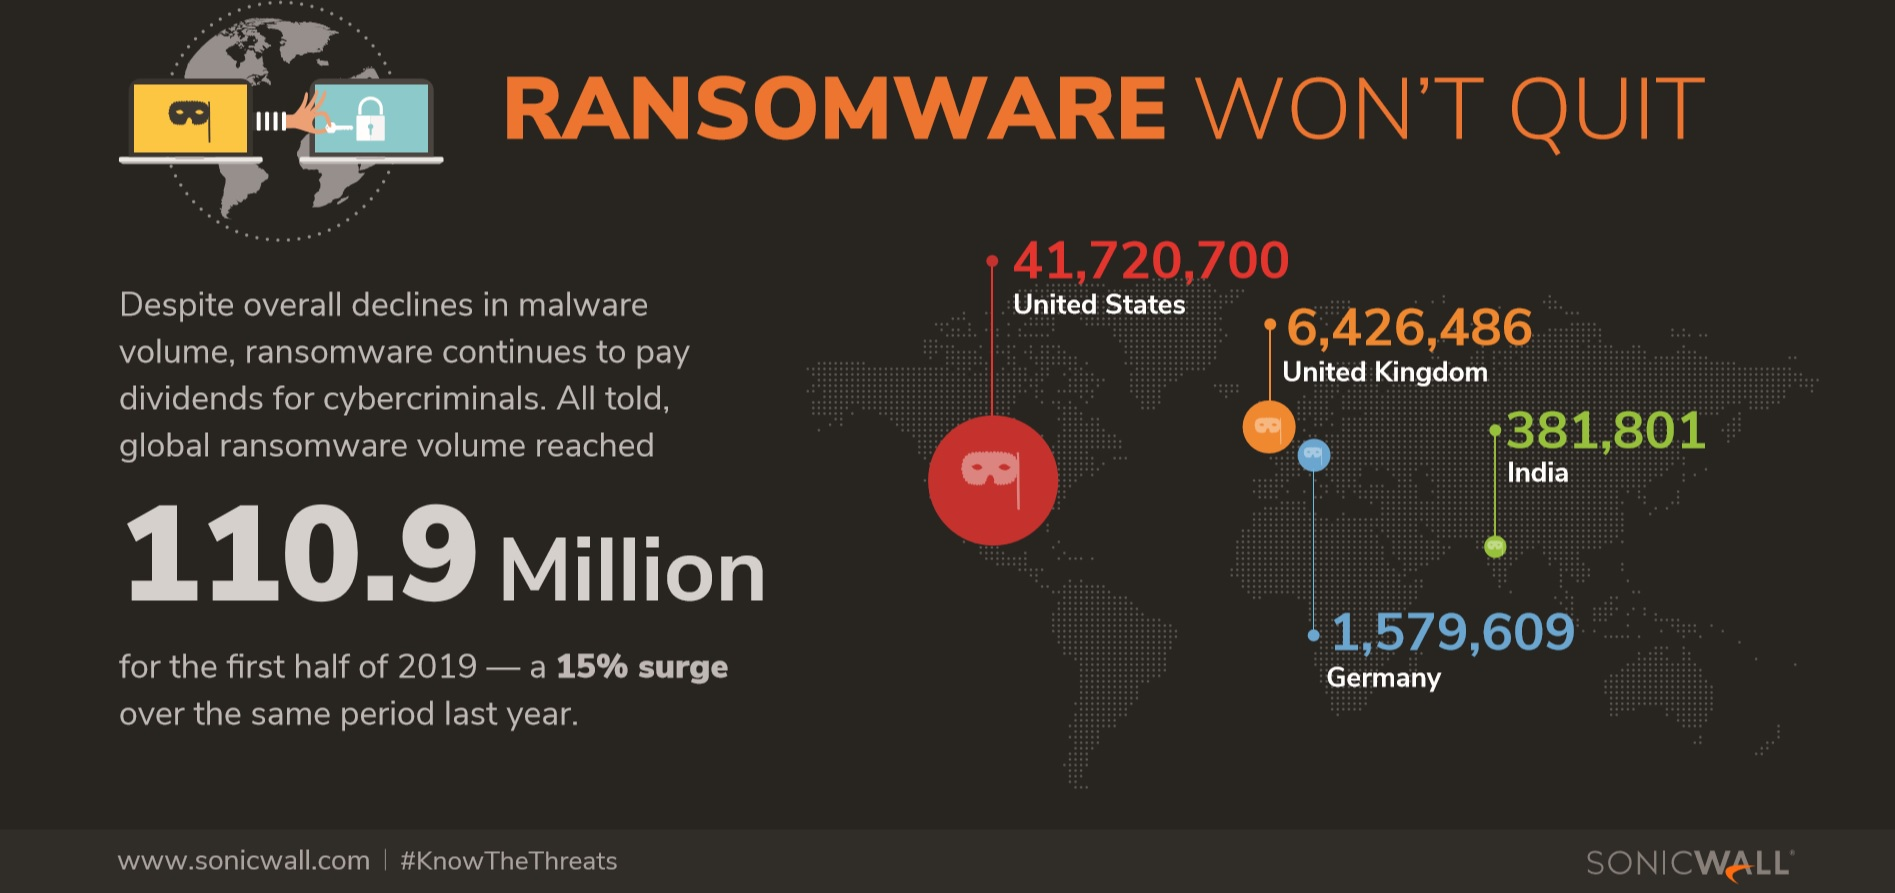 Sonicwal - Infographic - Ransomware